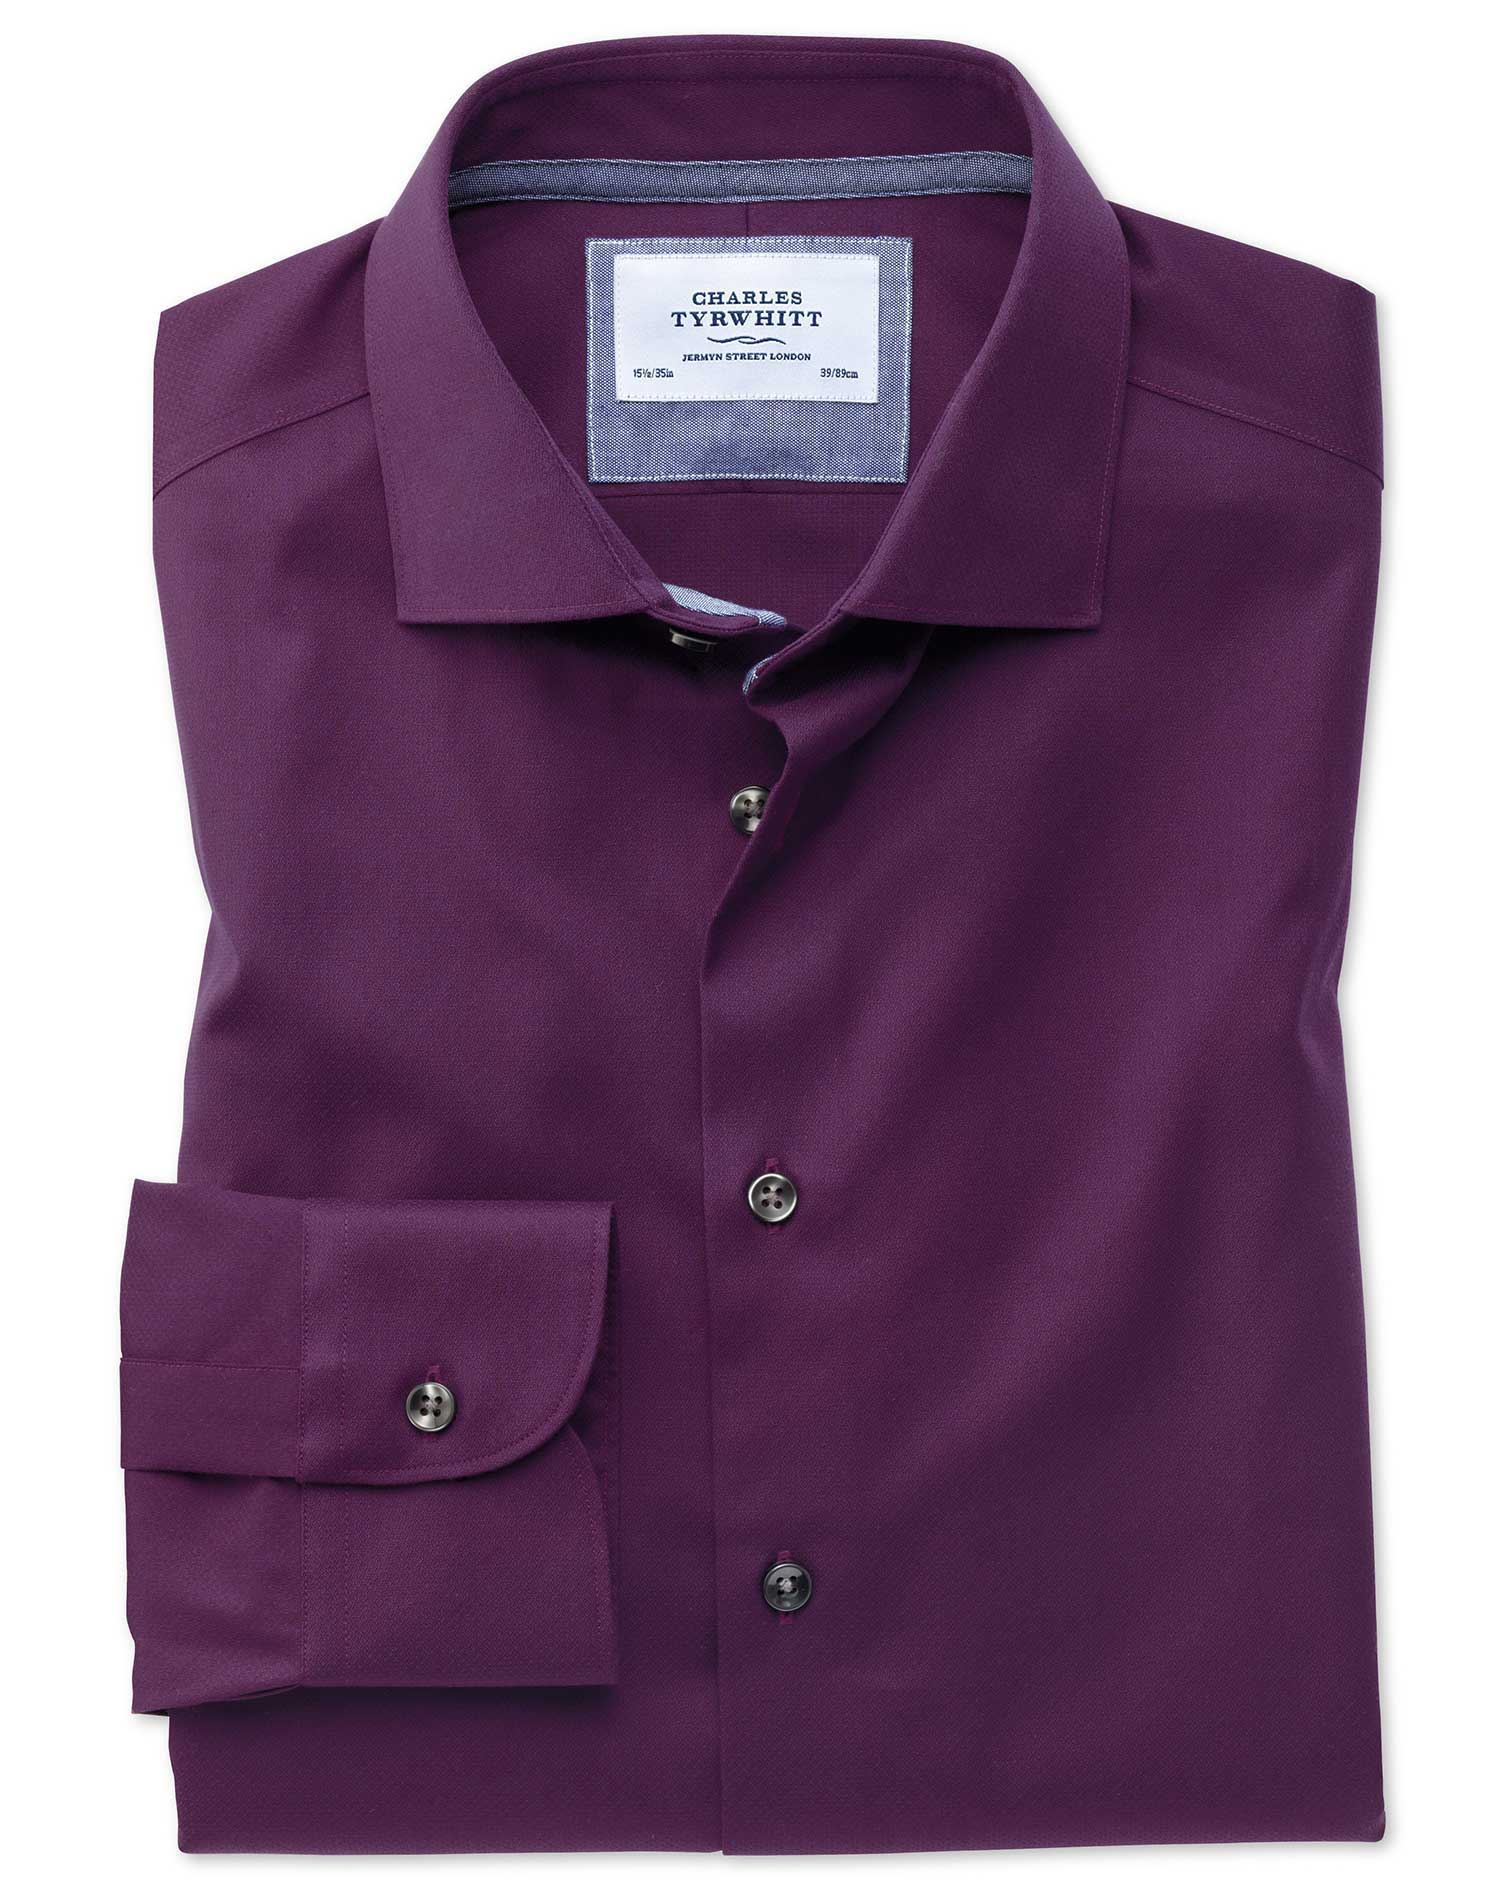 Slim Fit Semi-Cutaway Business Casual Non-Iron Modern Textures Dark Purple Cotton Formal Shirt Singl